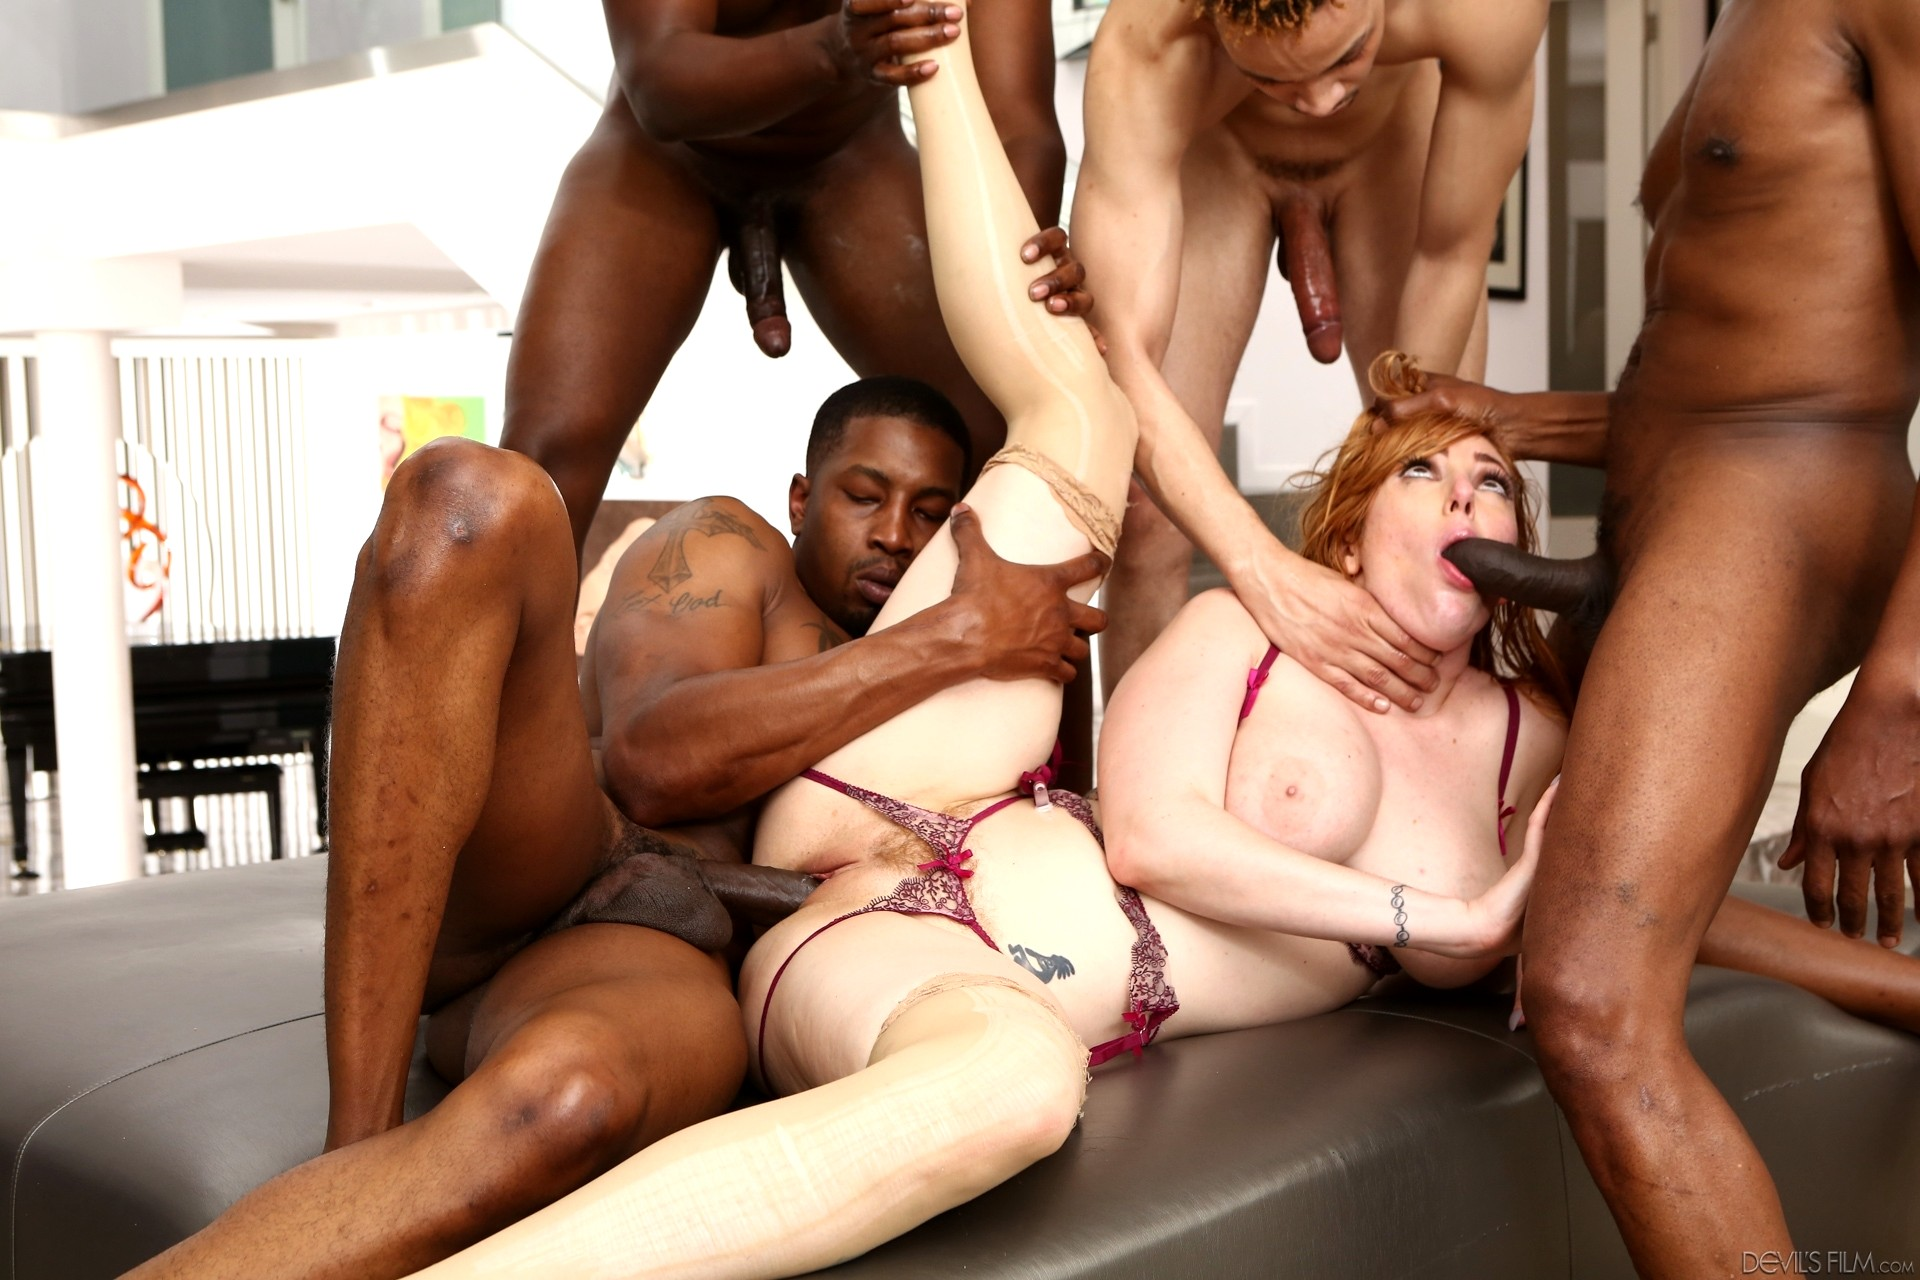 Lauren phillips interracial gangbang 5